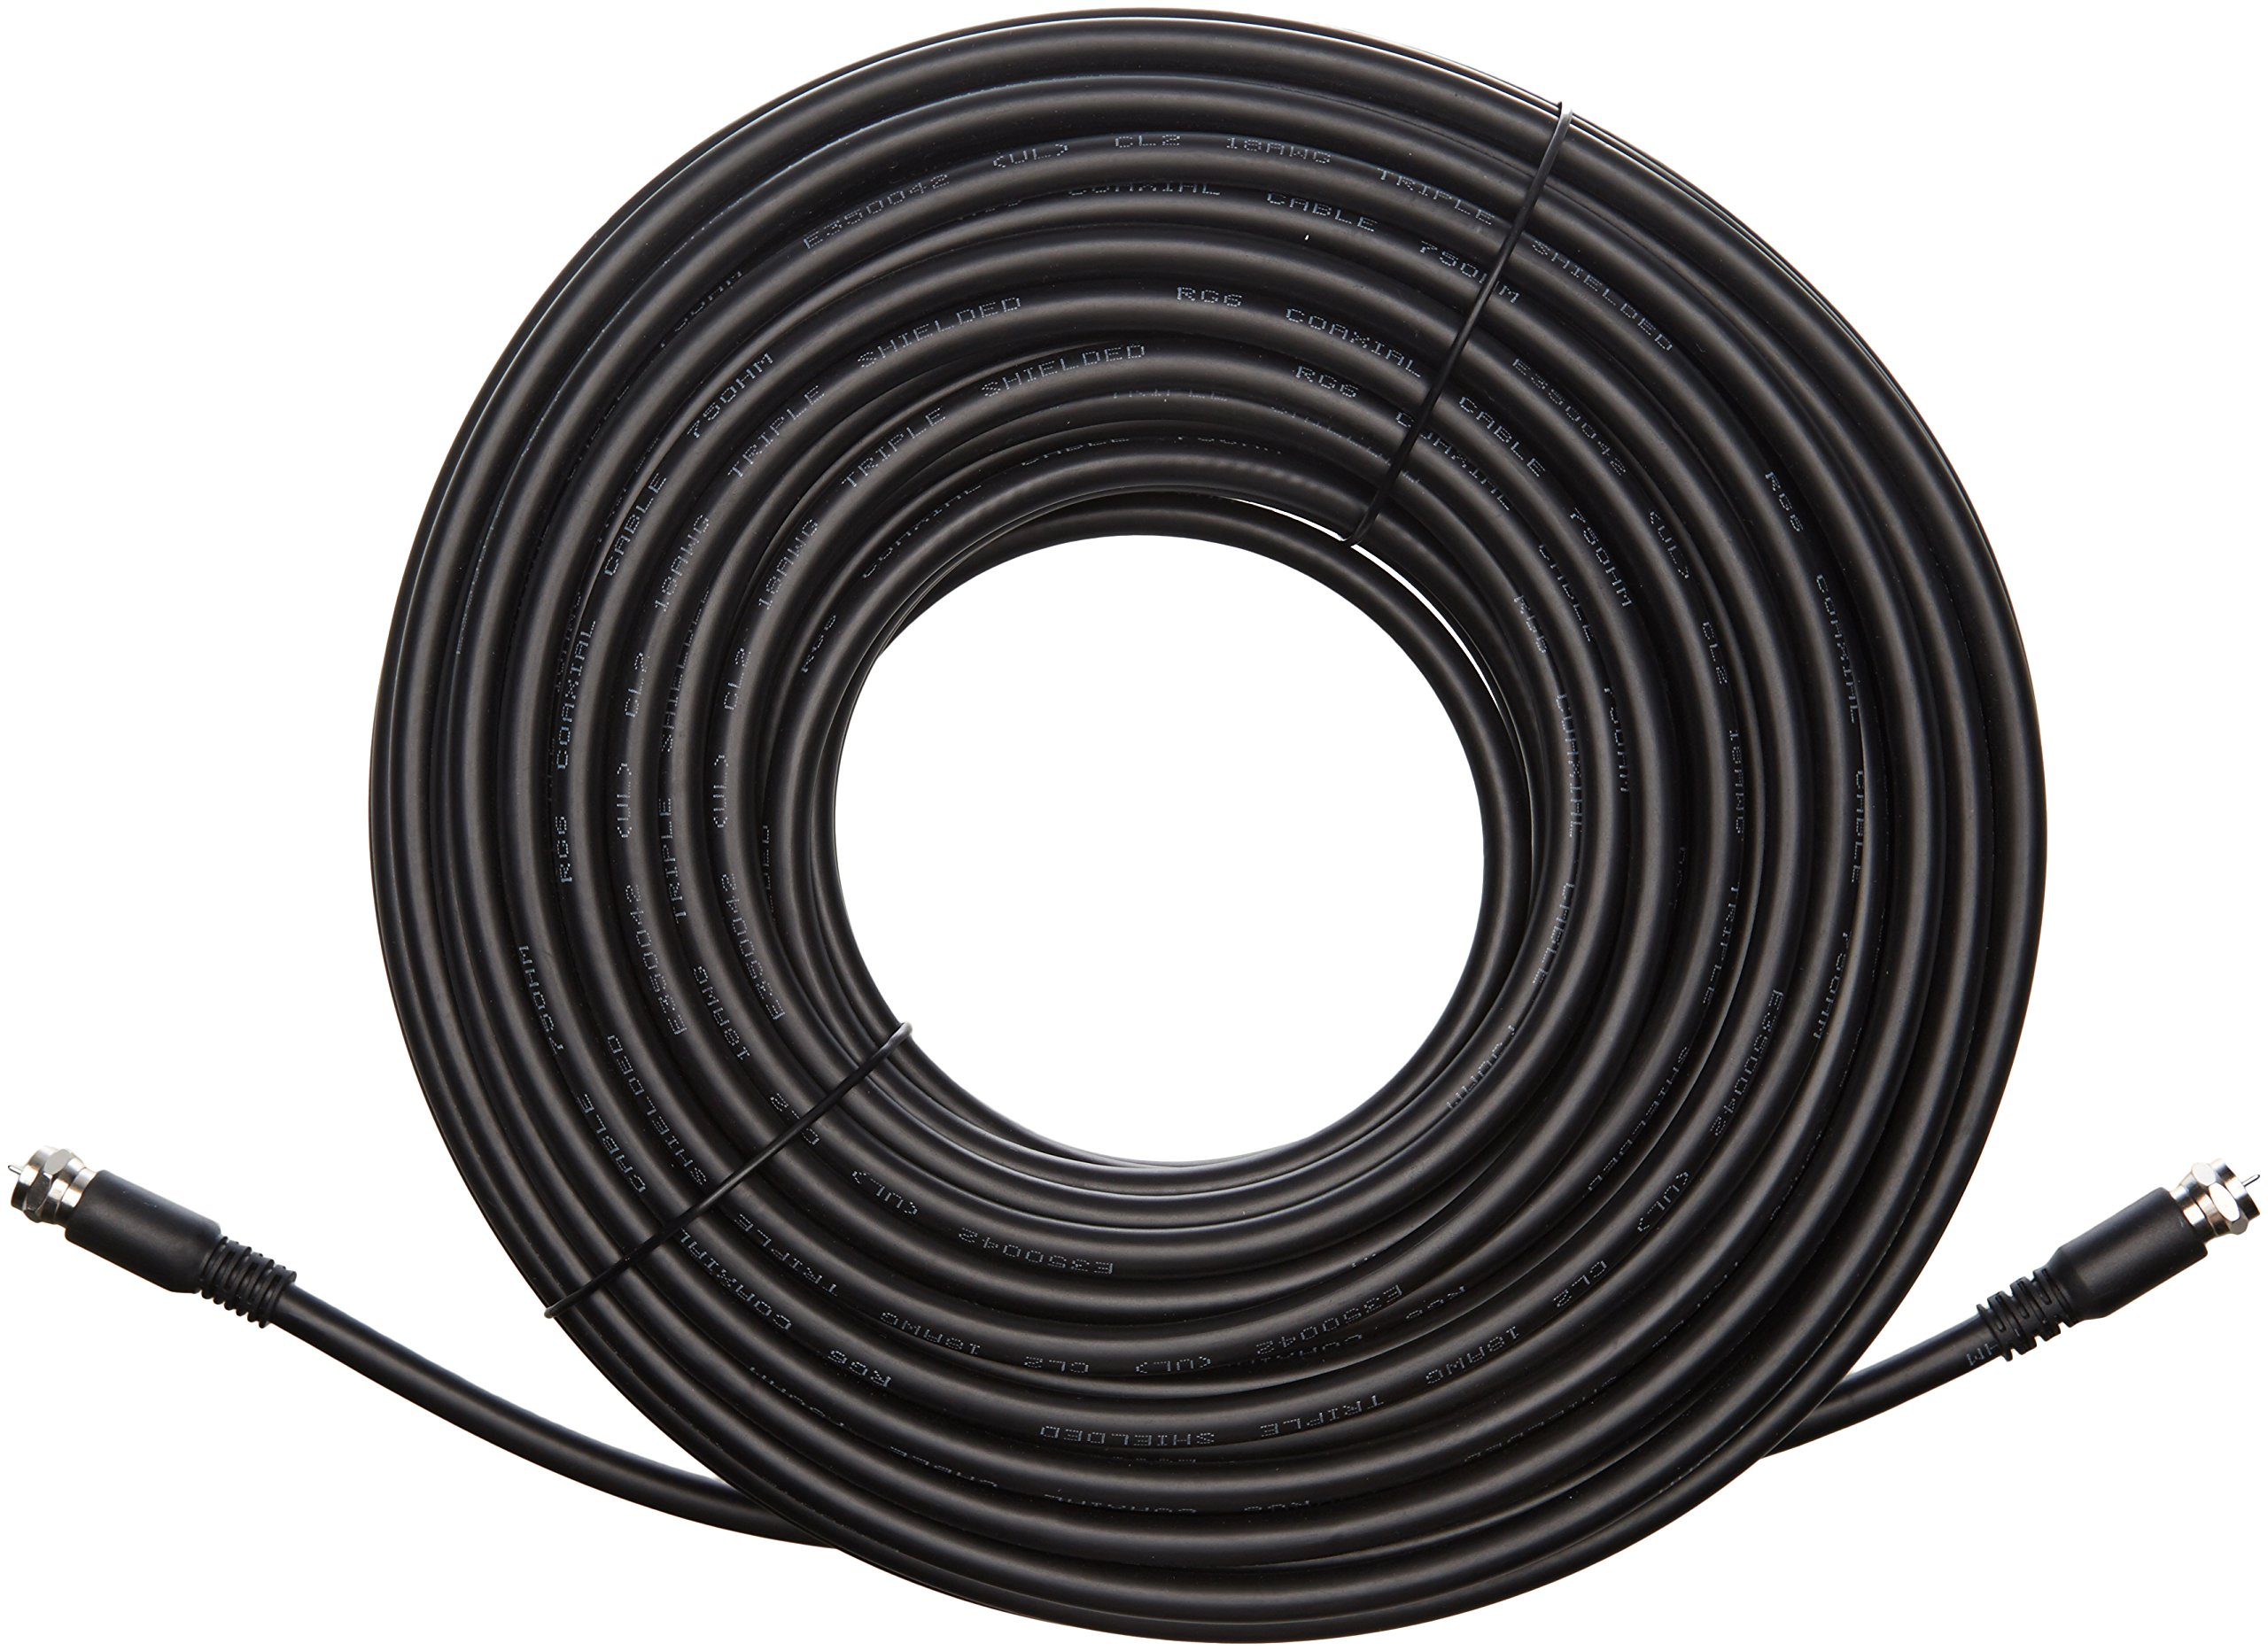 AmazonBasics CL2-Rated Coaxial TV Cable - 100 feet by AmazonBasics (Image #4)